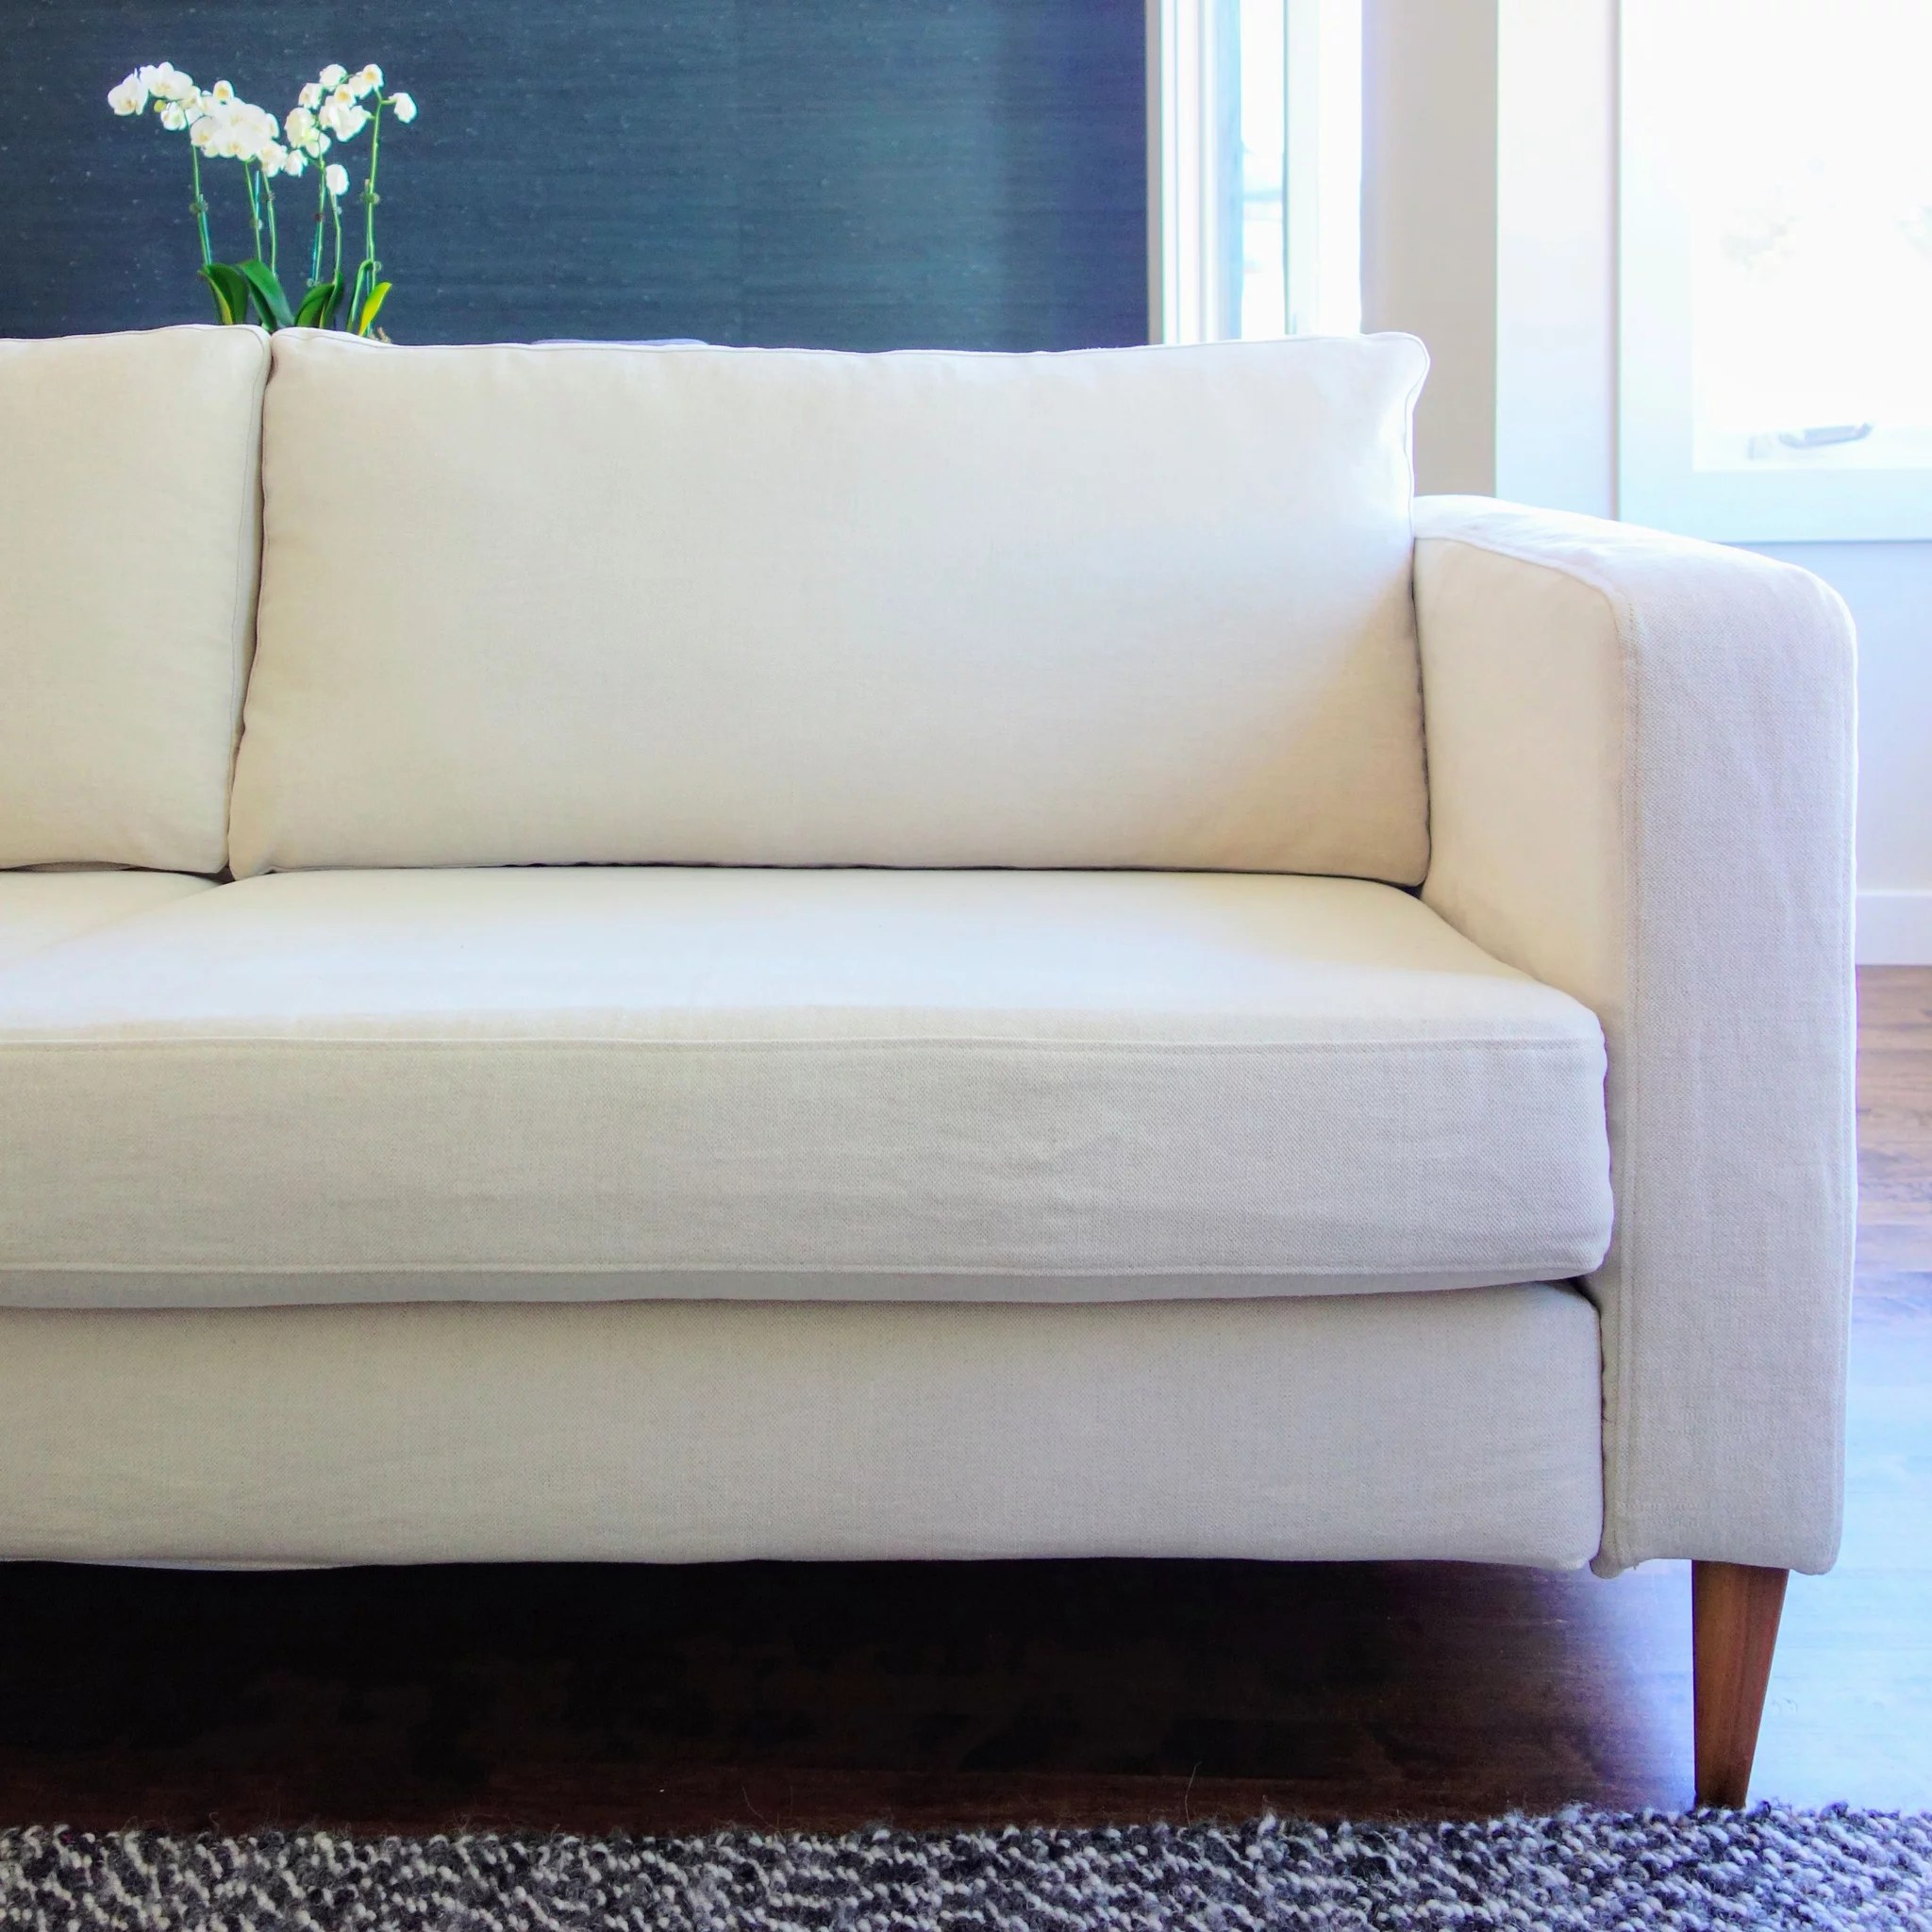 ikea chair covers karlstad cover hire kent ltd chatham couch slip covers. perfect full size of sofas centerikea slipcover sofa grosgrain finally ...